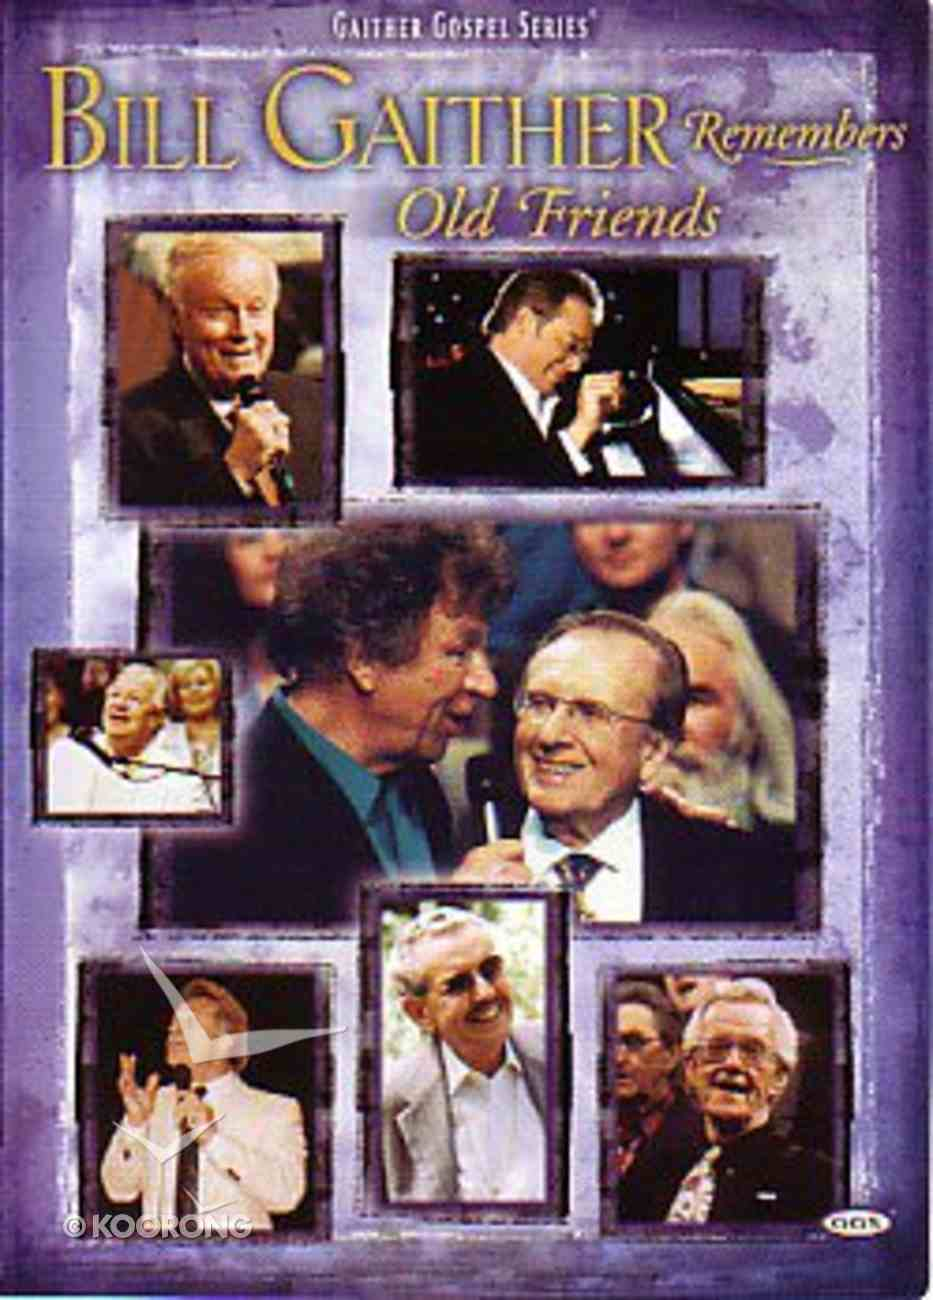 Bill Gaither Remembers Old Friends (Gaither Gospel Series) DVD